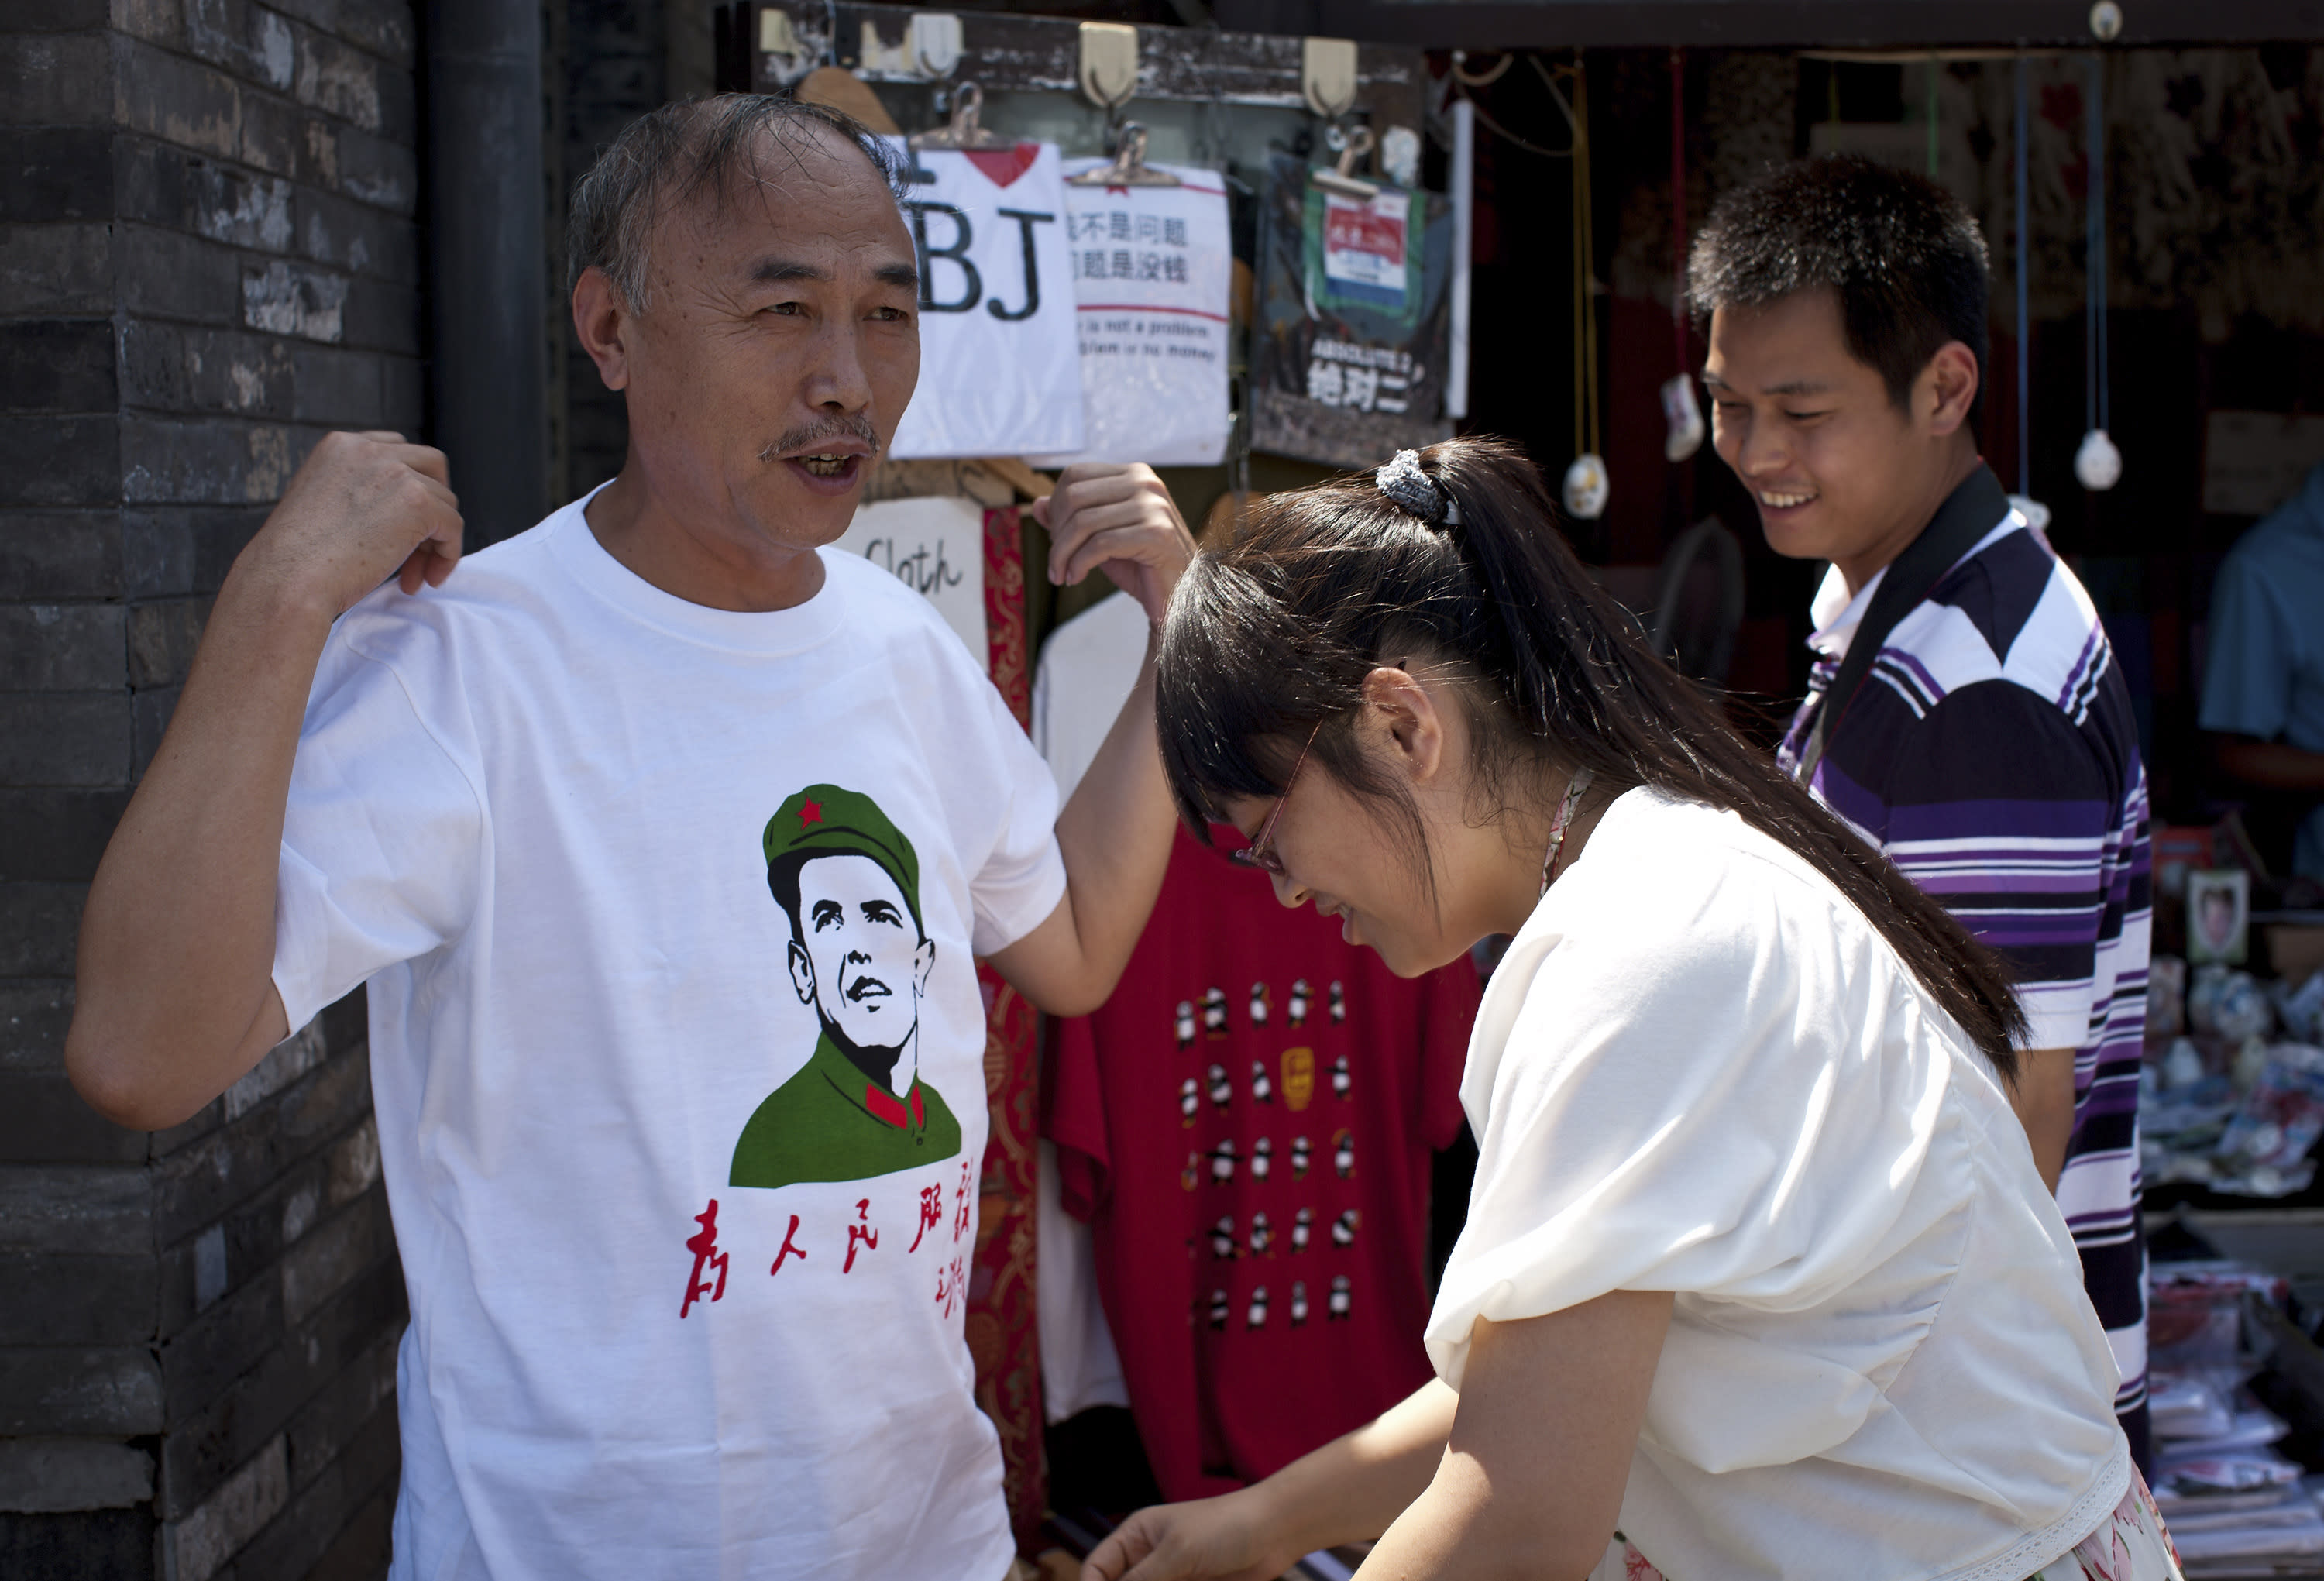 "ADDS TRANSLATION OF WRITING ON T-SHIRT - In this Sunday, July 31, 2011 photo, a Chinese man tries on a t-shirt with an image of U.S. President Barack Obama dressed in a Cultural Revolution-era military uniform, with Chinese writing reading ""Serves the People"" at a shop in Beijing, China. Obama and Chinese President Xi Jinping face weighty issues when they meet at a private estate in California next week, but their most important task may simply be establishing a strong rapport. (AP Photo/Andy Wong)"